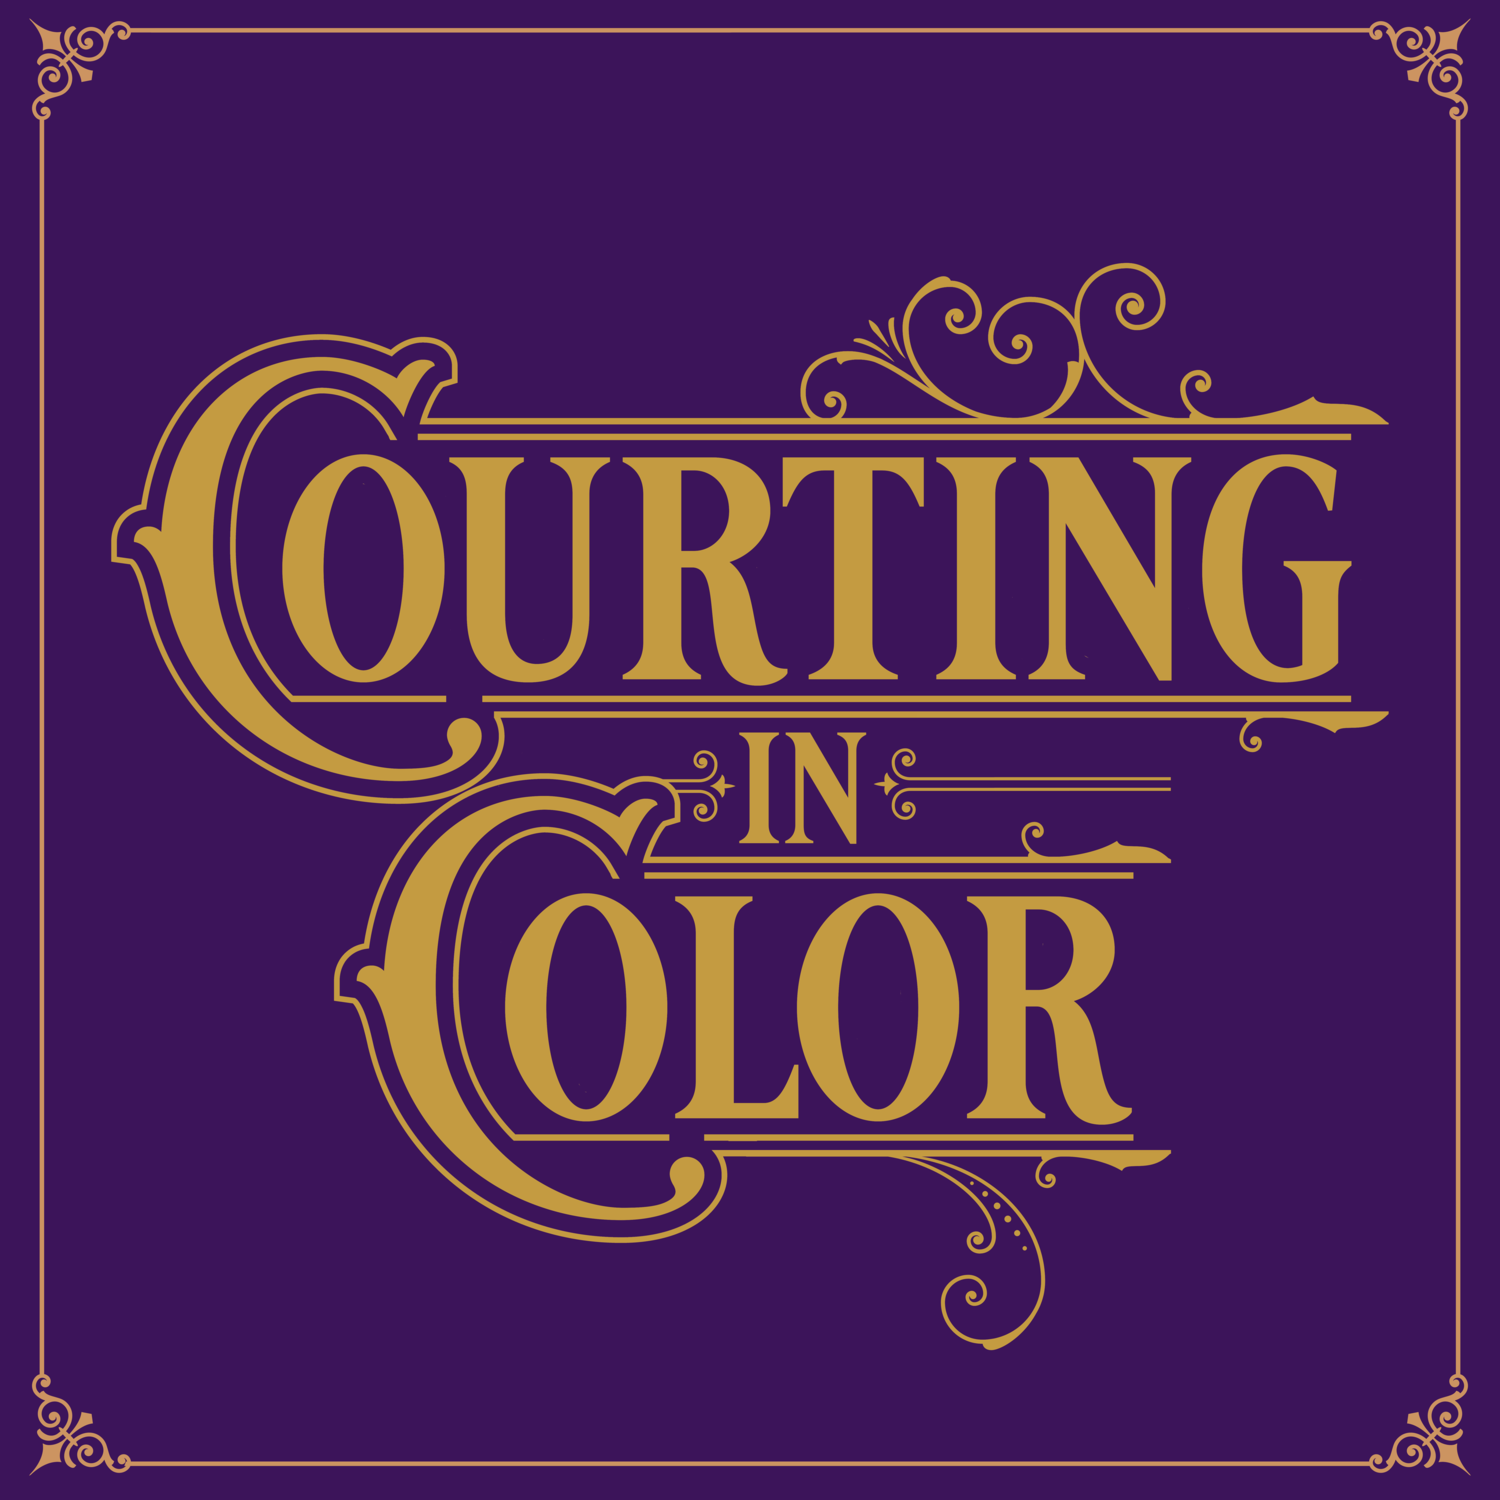 Courting in Color